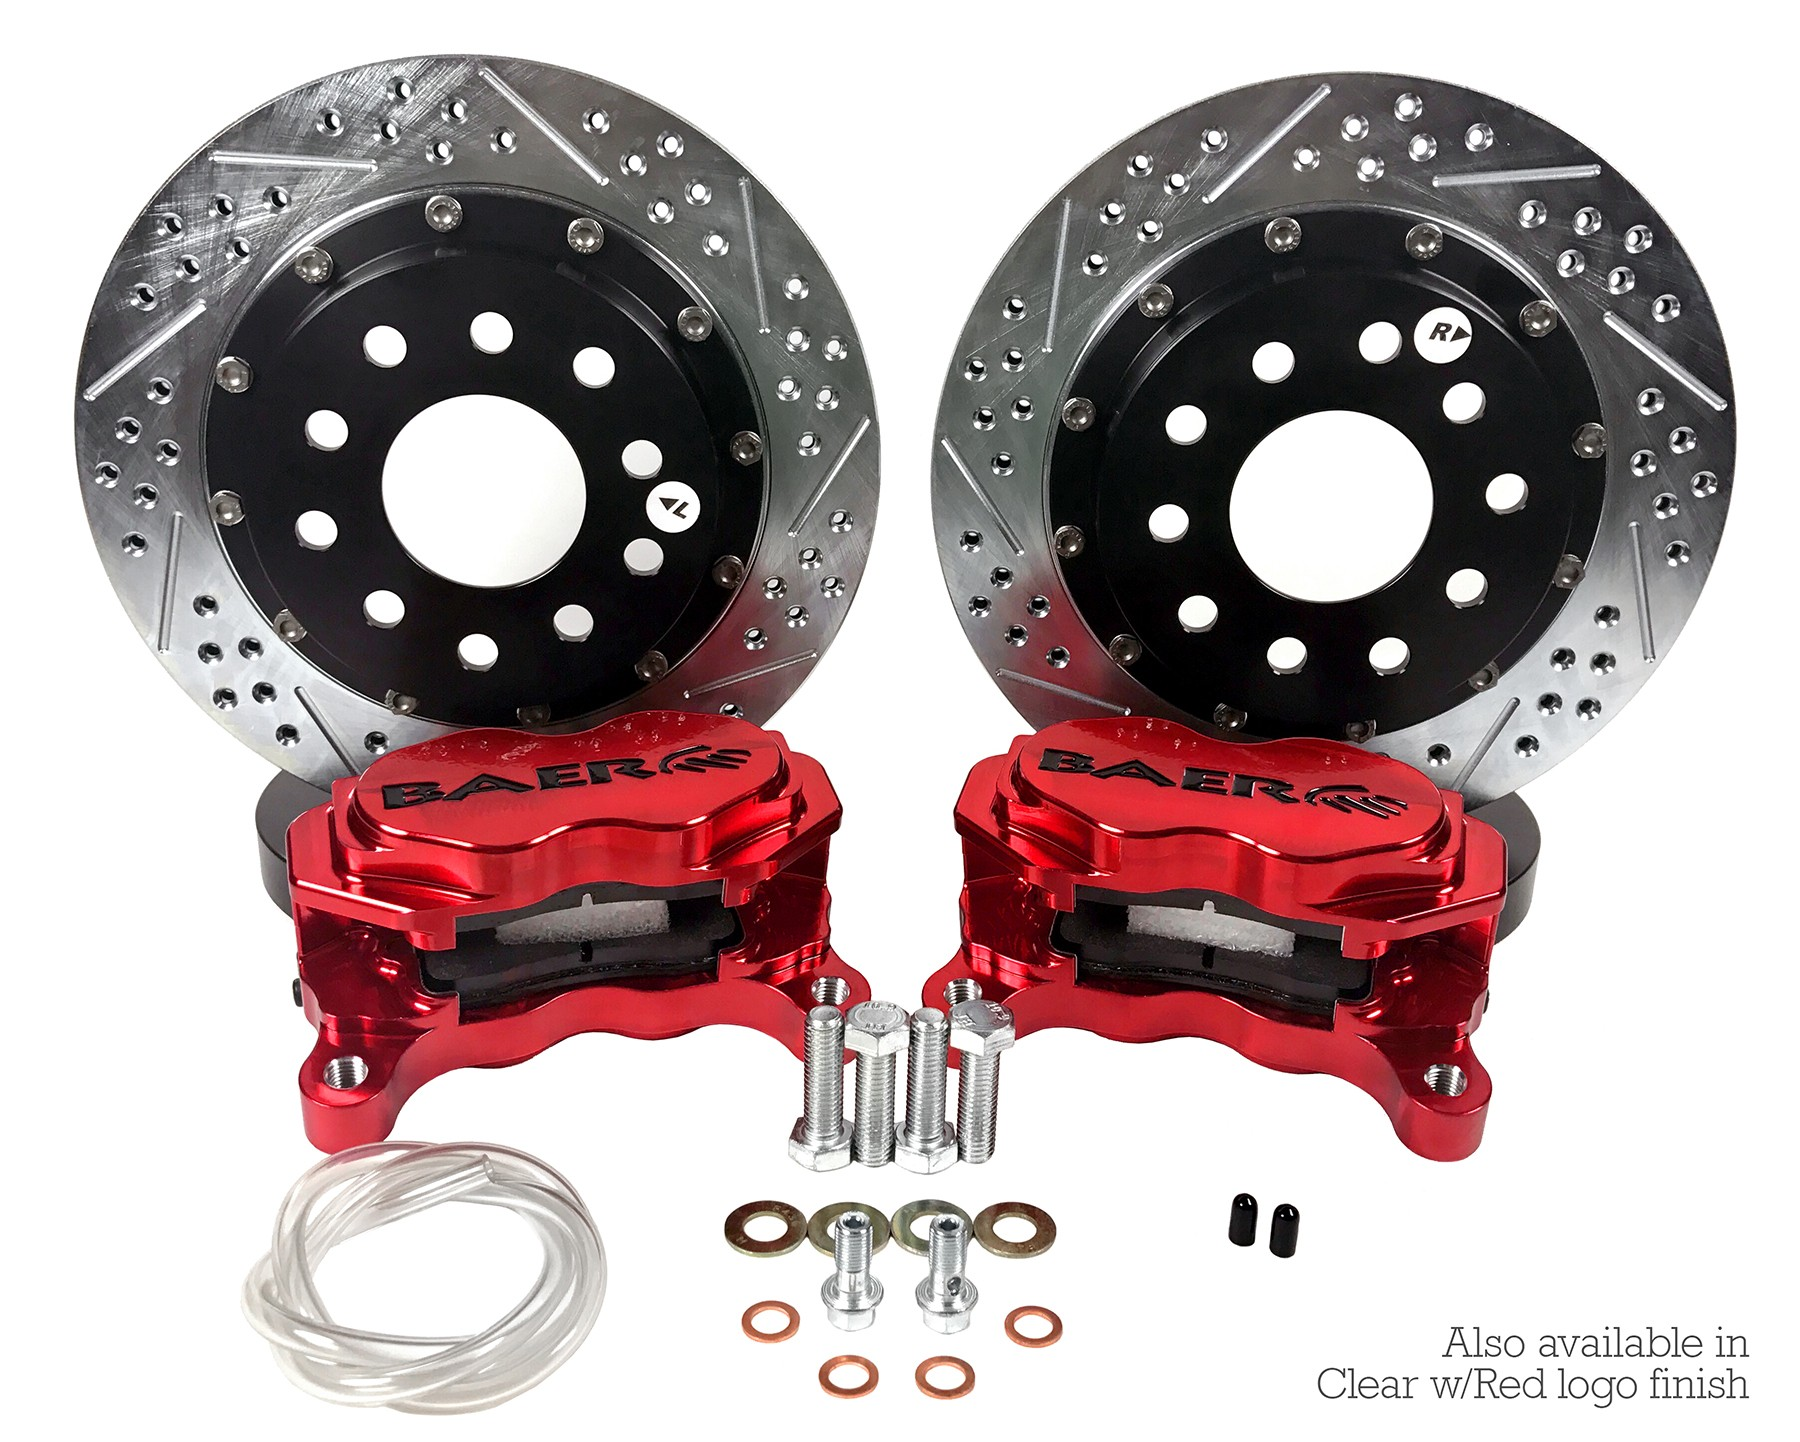 "11.62"" Front SS4+ Drag Race Brake System"